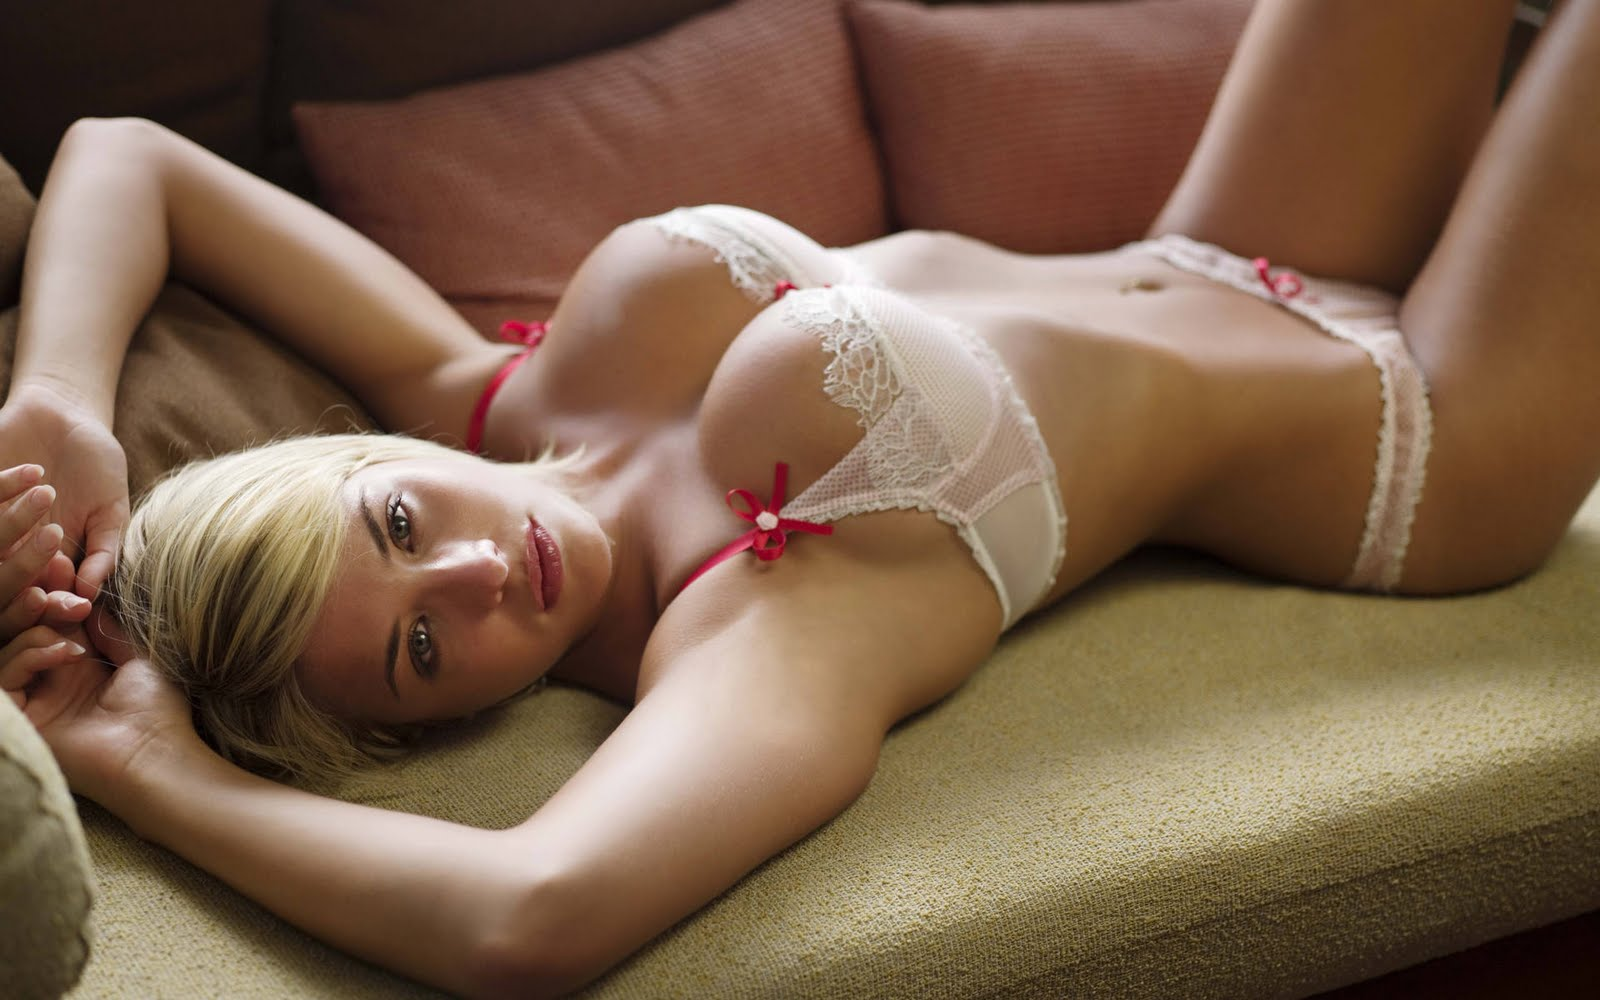 HD Wallpapers of Hot Girls - A   HD Wallpapers